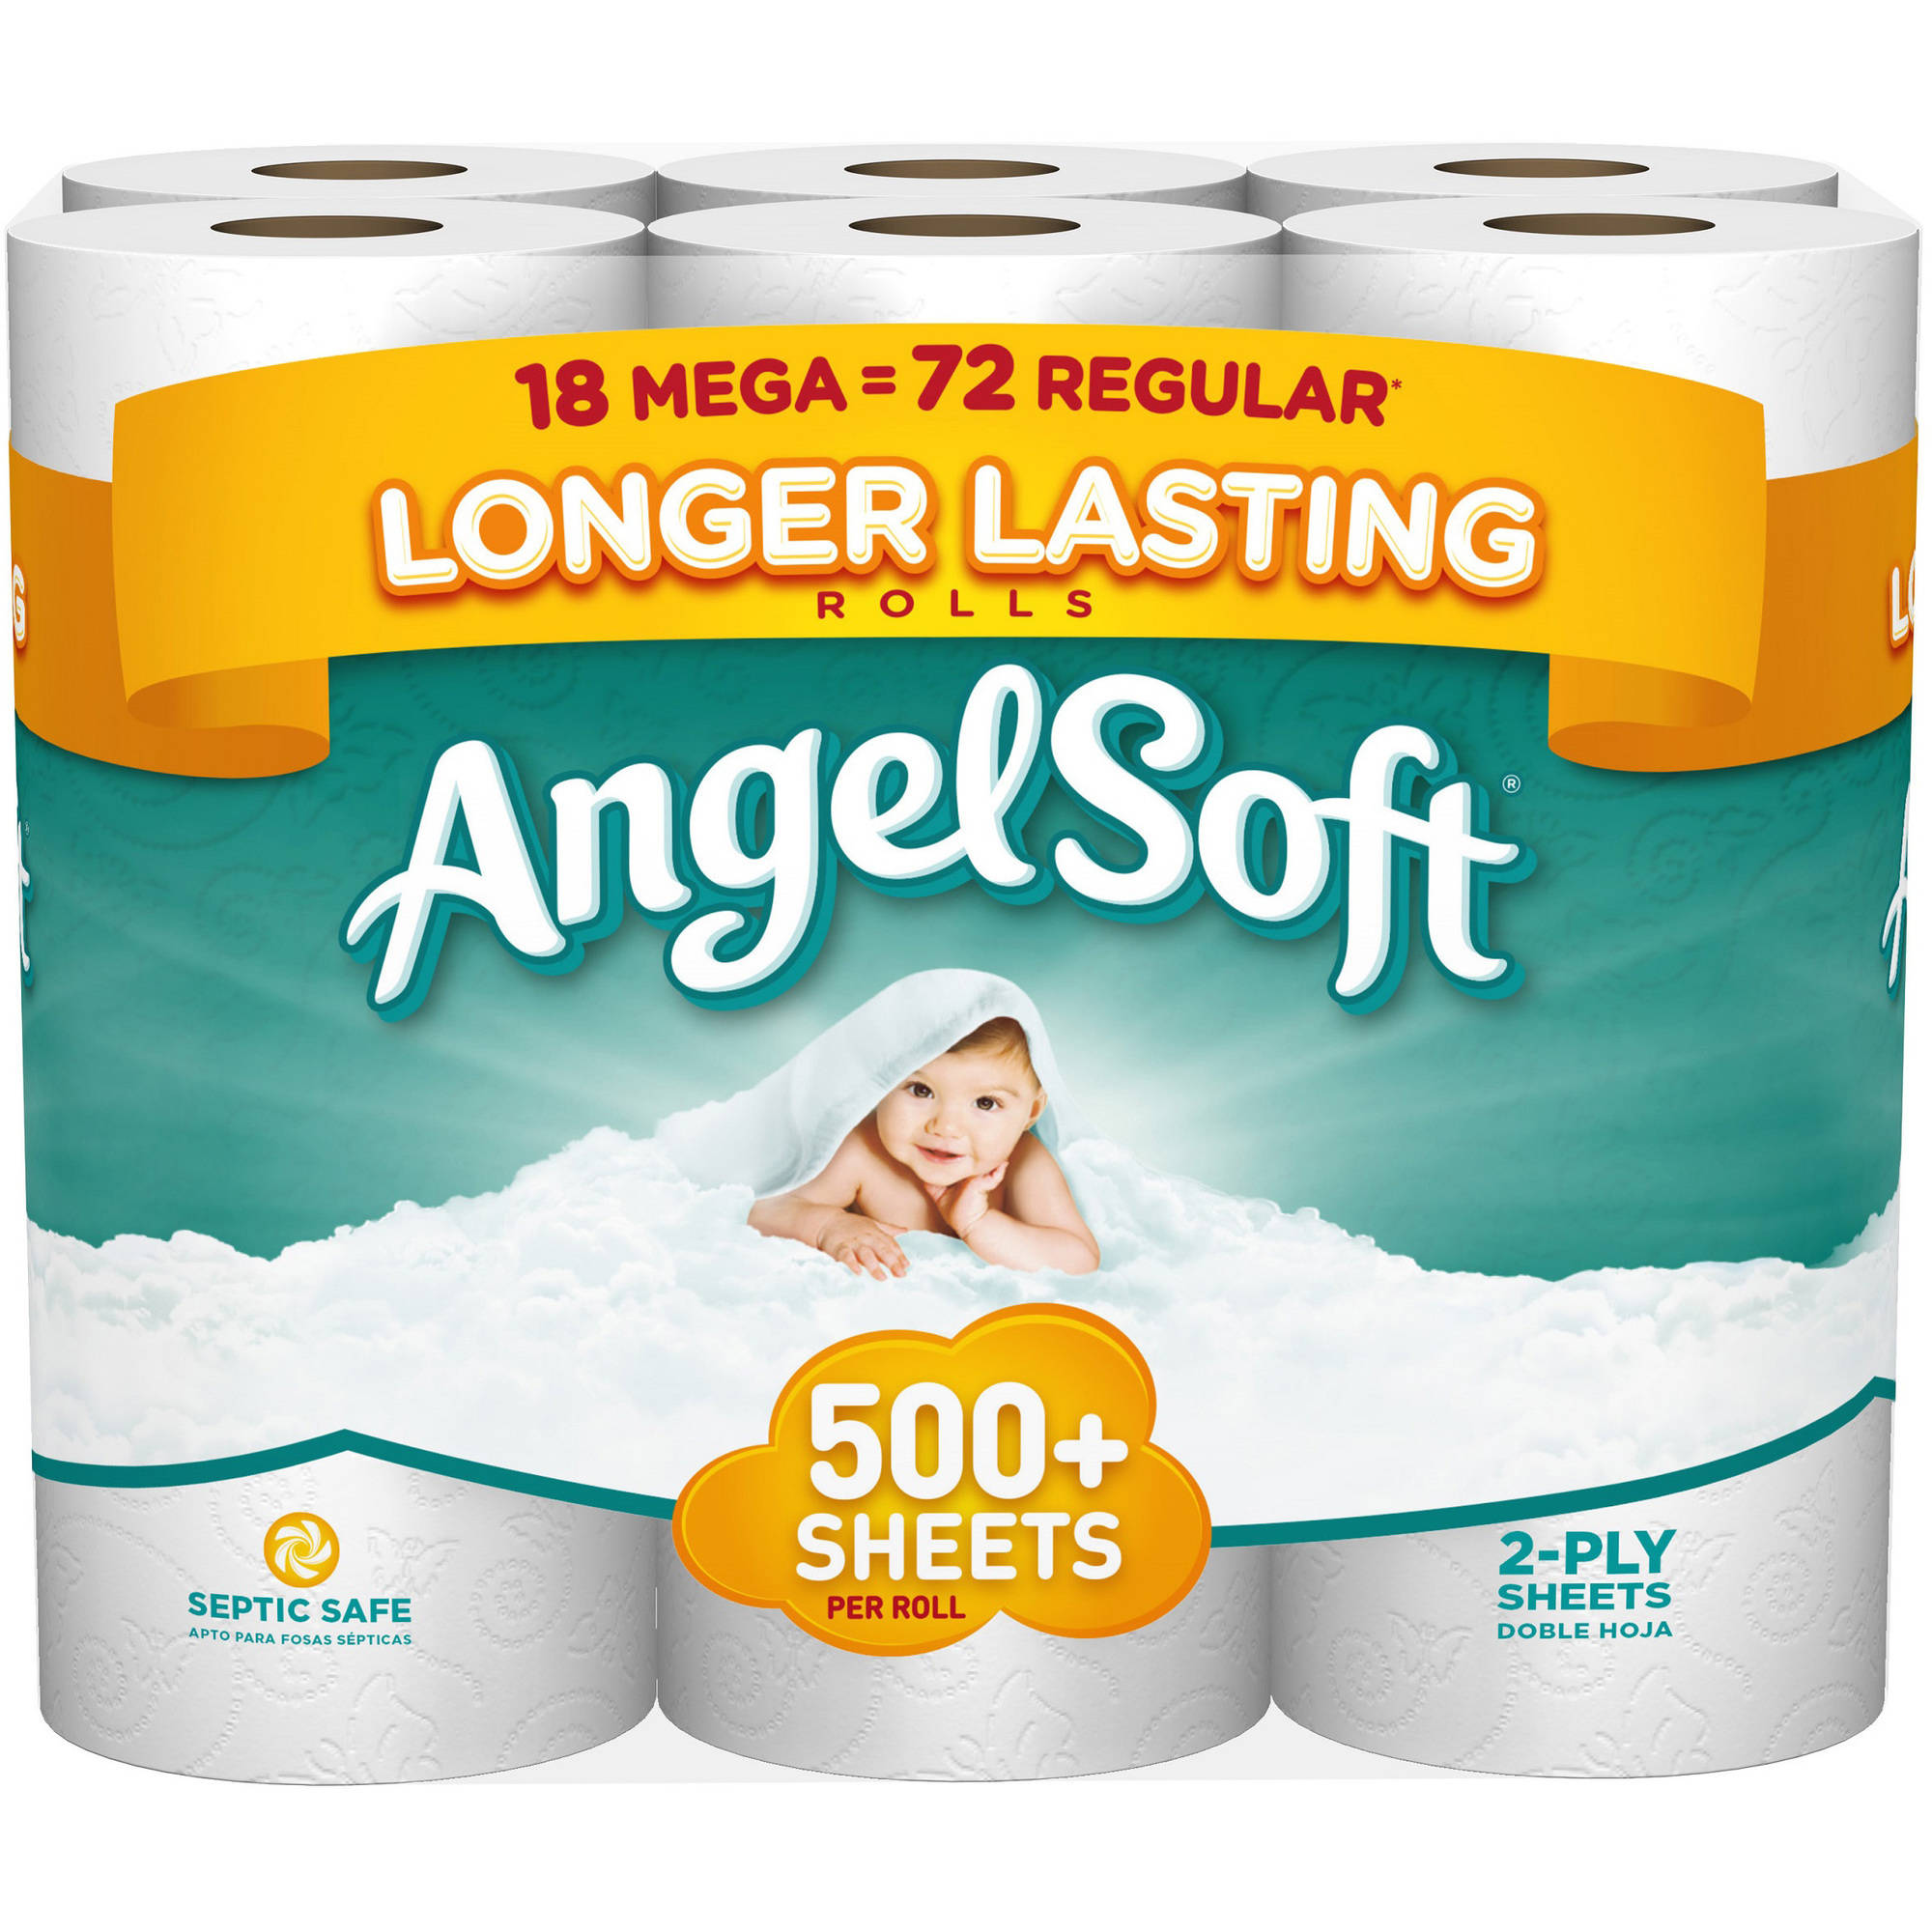 Angel Soft Toilet Paper, 18 Mega Rolls, Bath Tissue